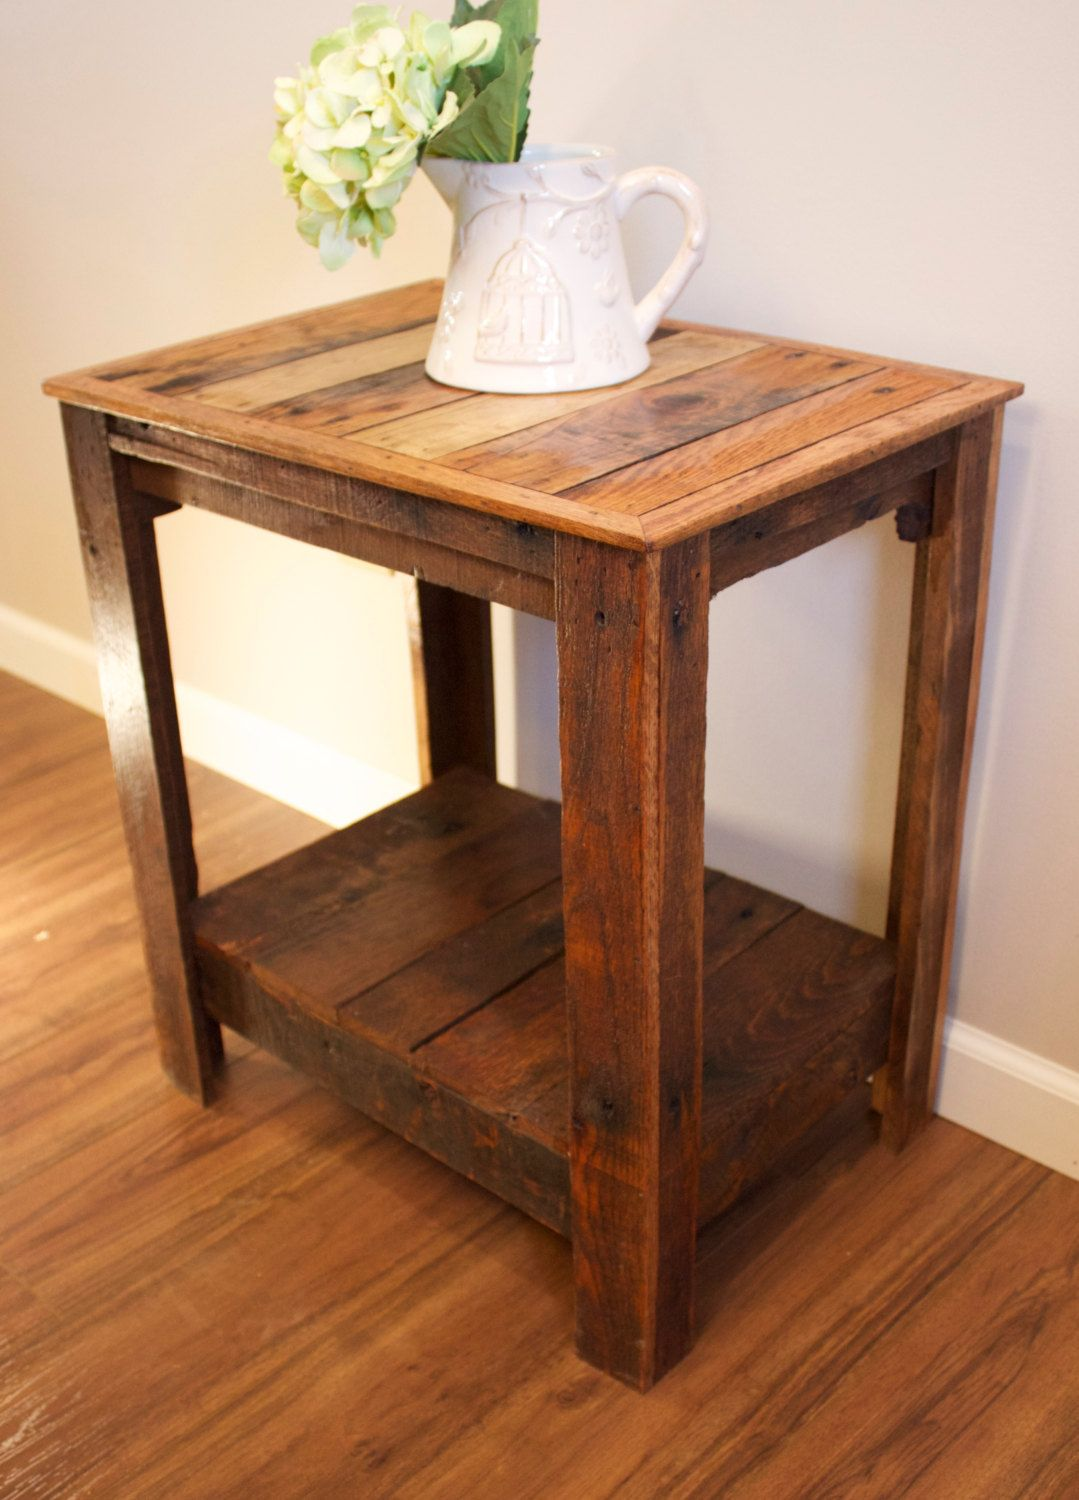 Pin by george anna patterson on building stuff pinterest pallet